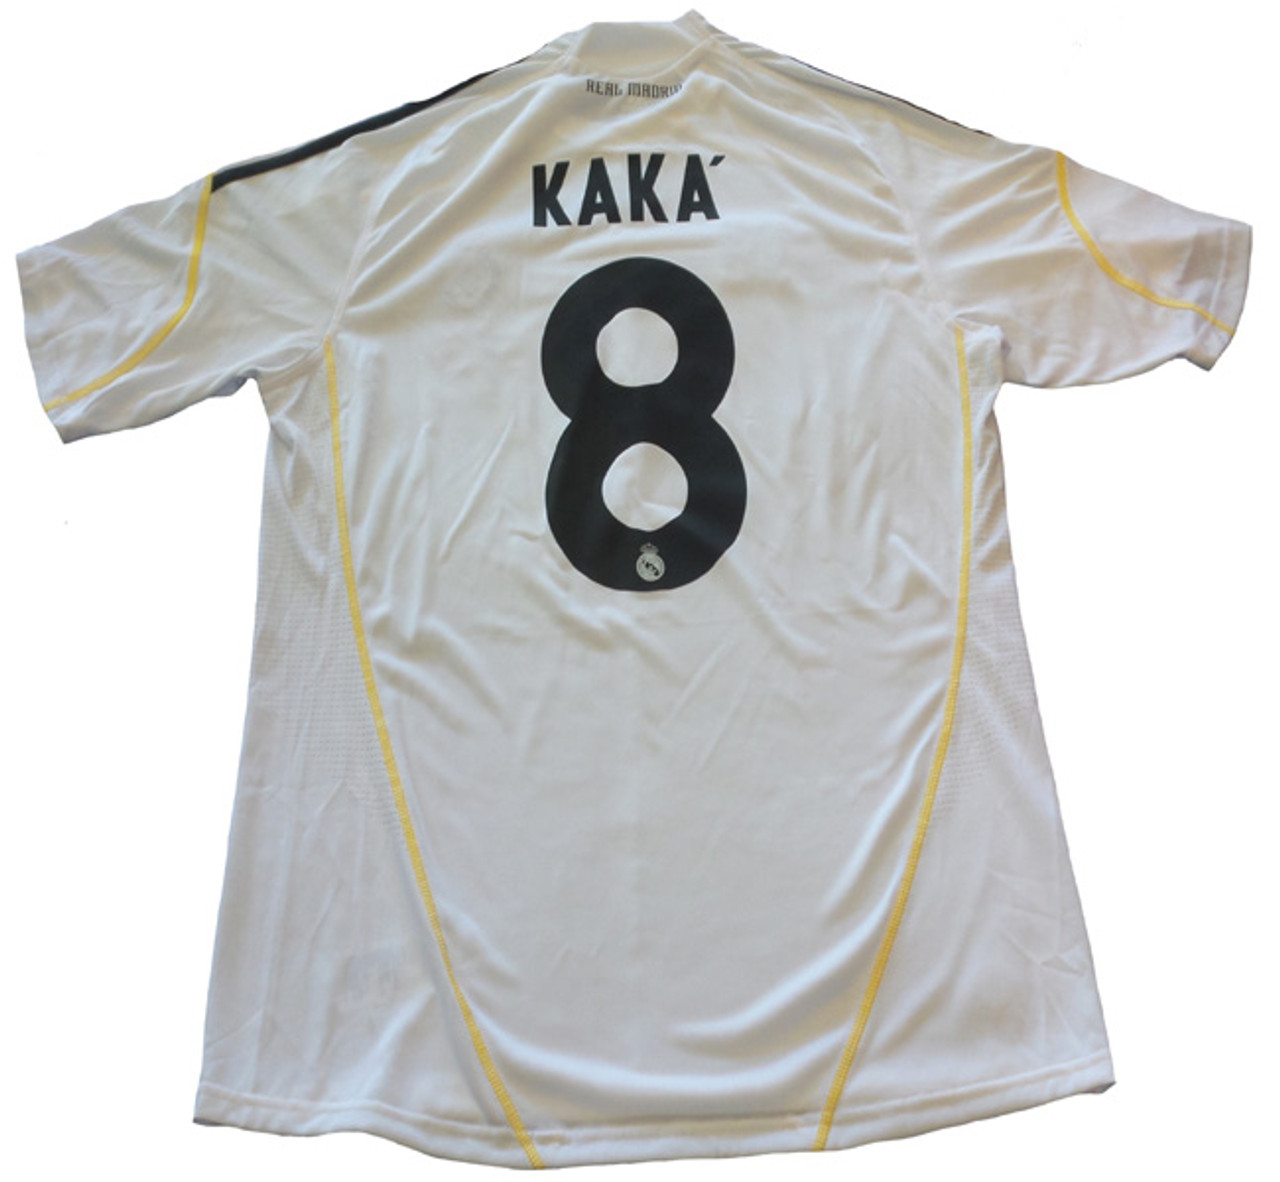 competitive price f694a 8069e ADIDAS REAL MADRID 2010 HOME `KAKA` JERSEY